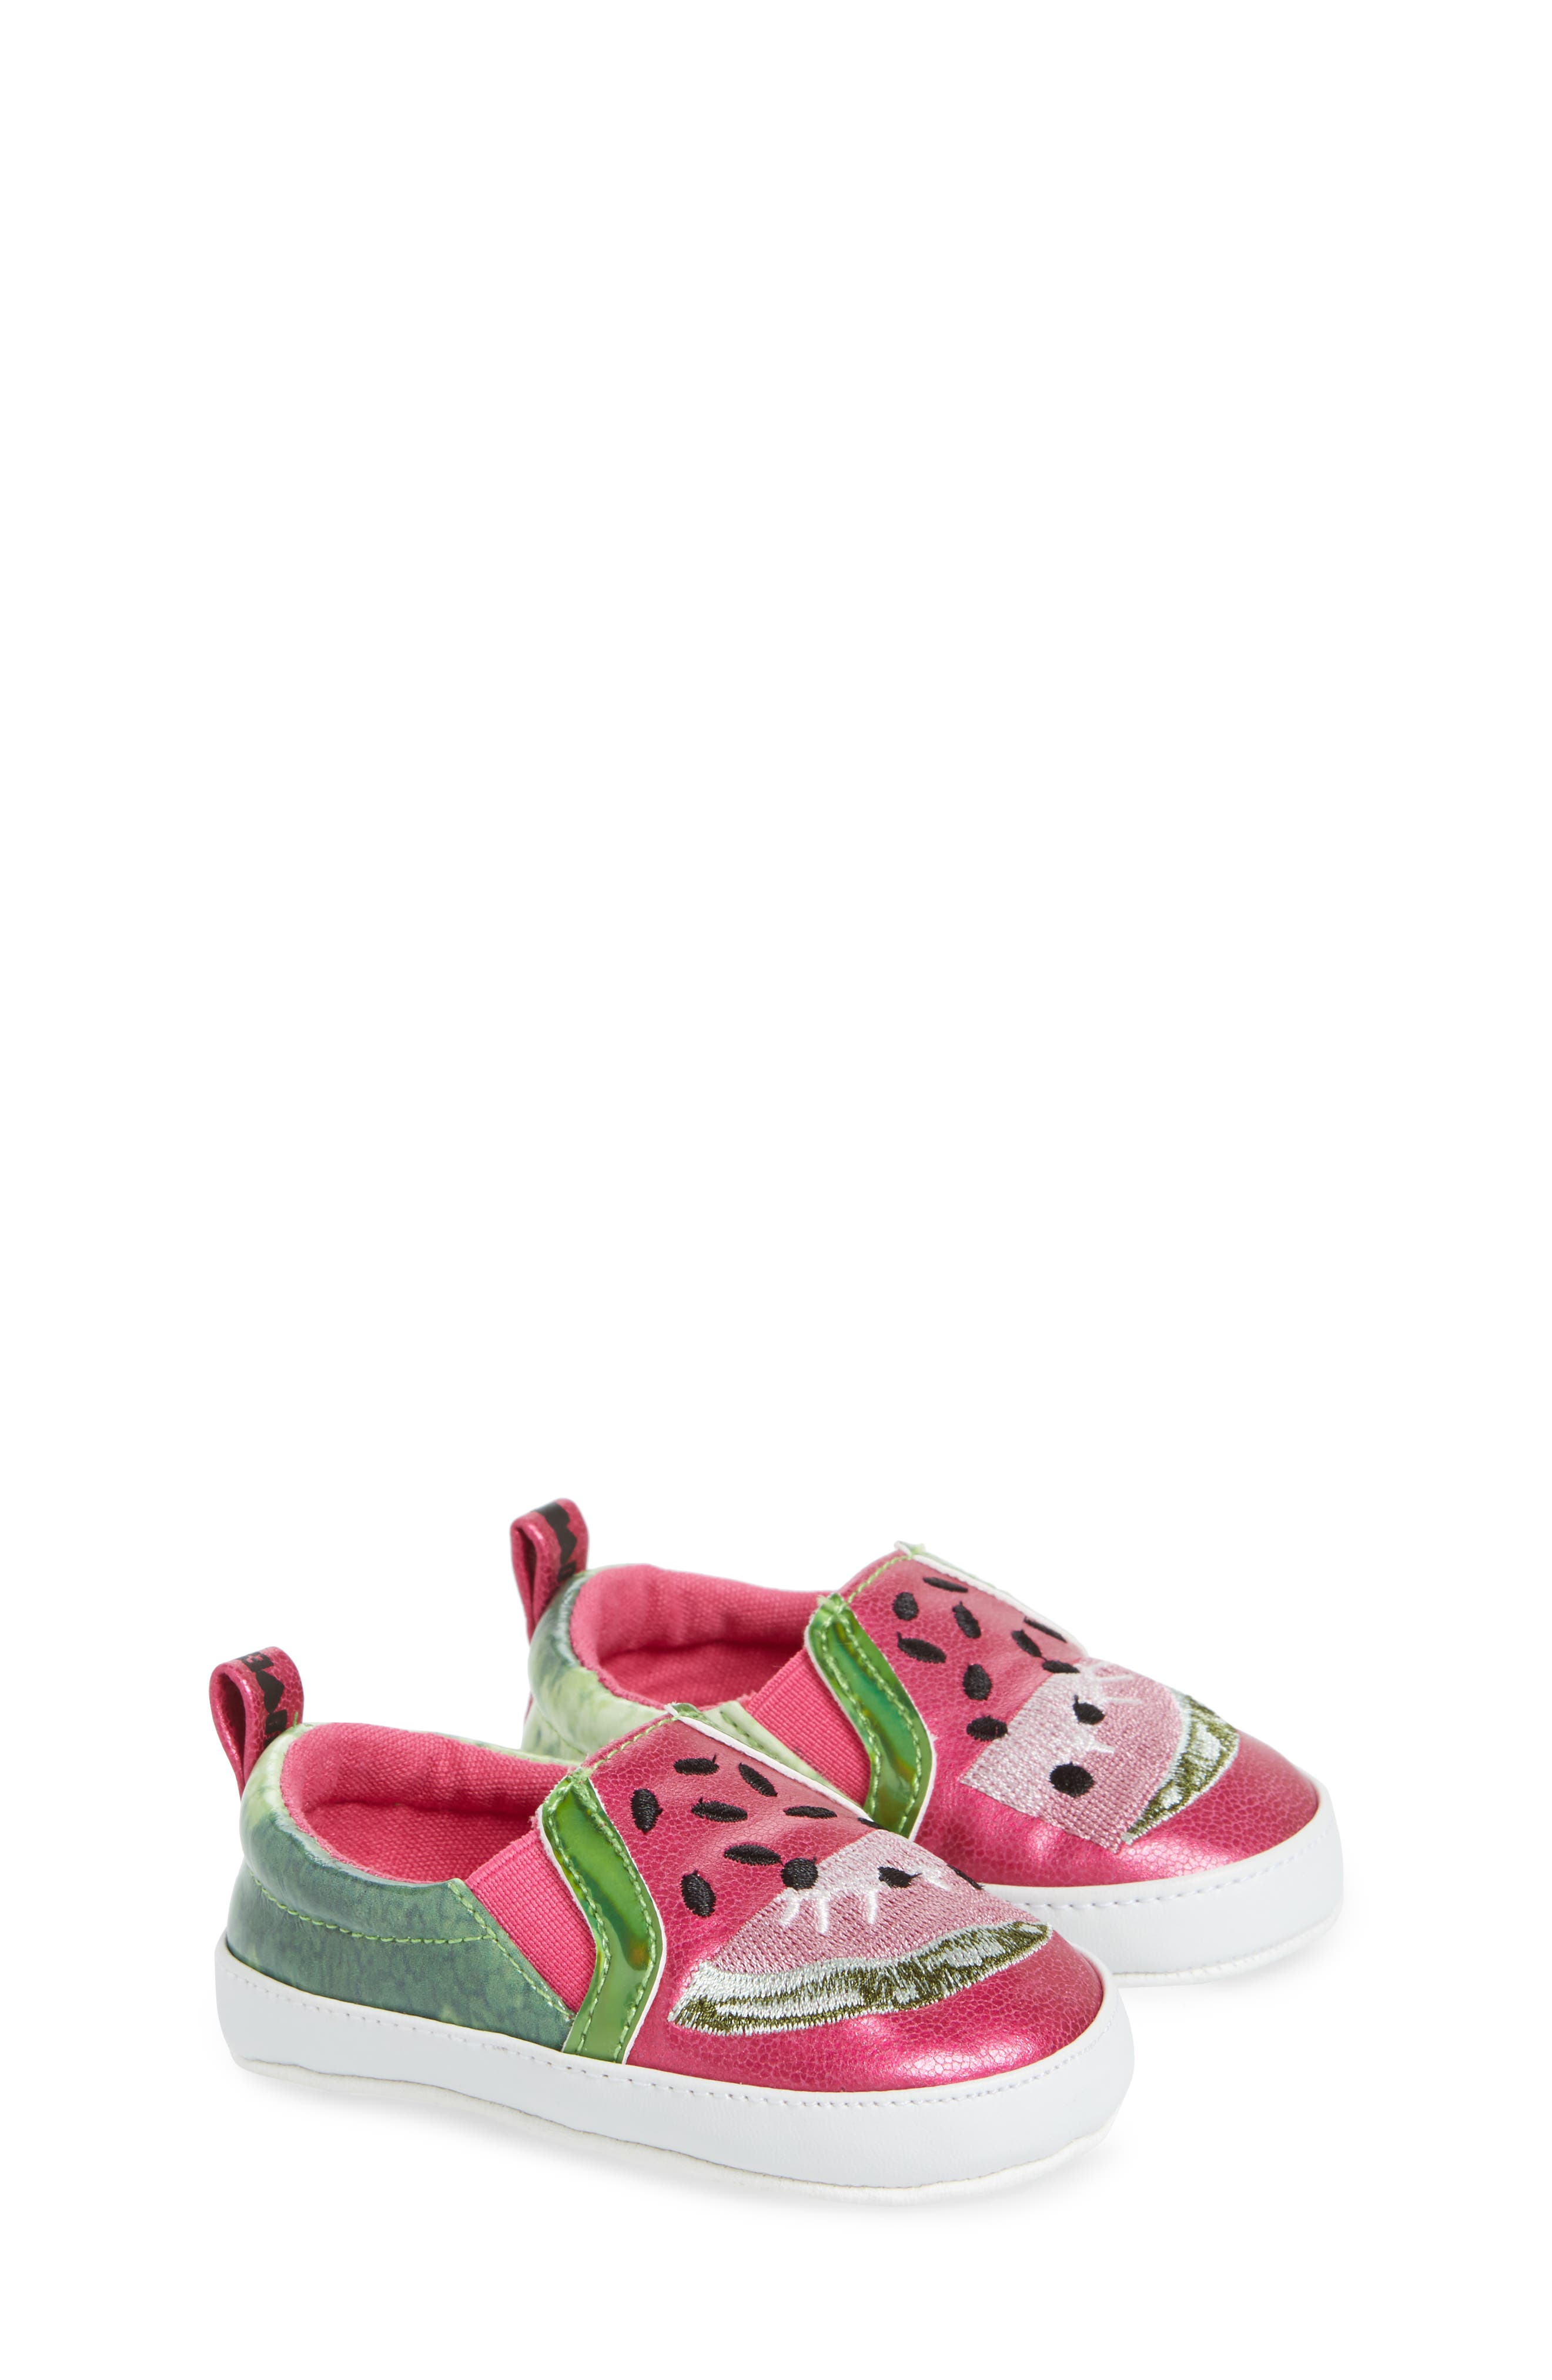 Baby Blane Watermelon Sneaker,                             Alternate thumbnail 2, color,                             653